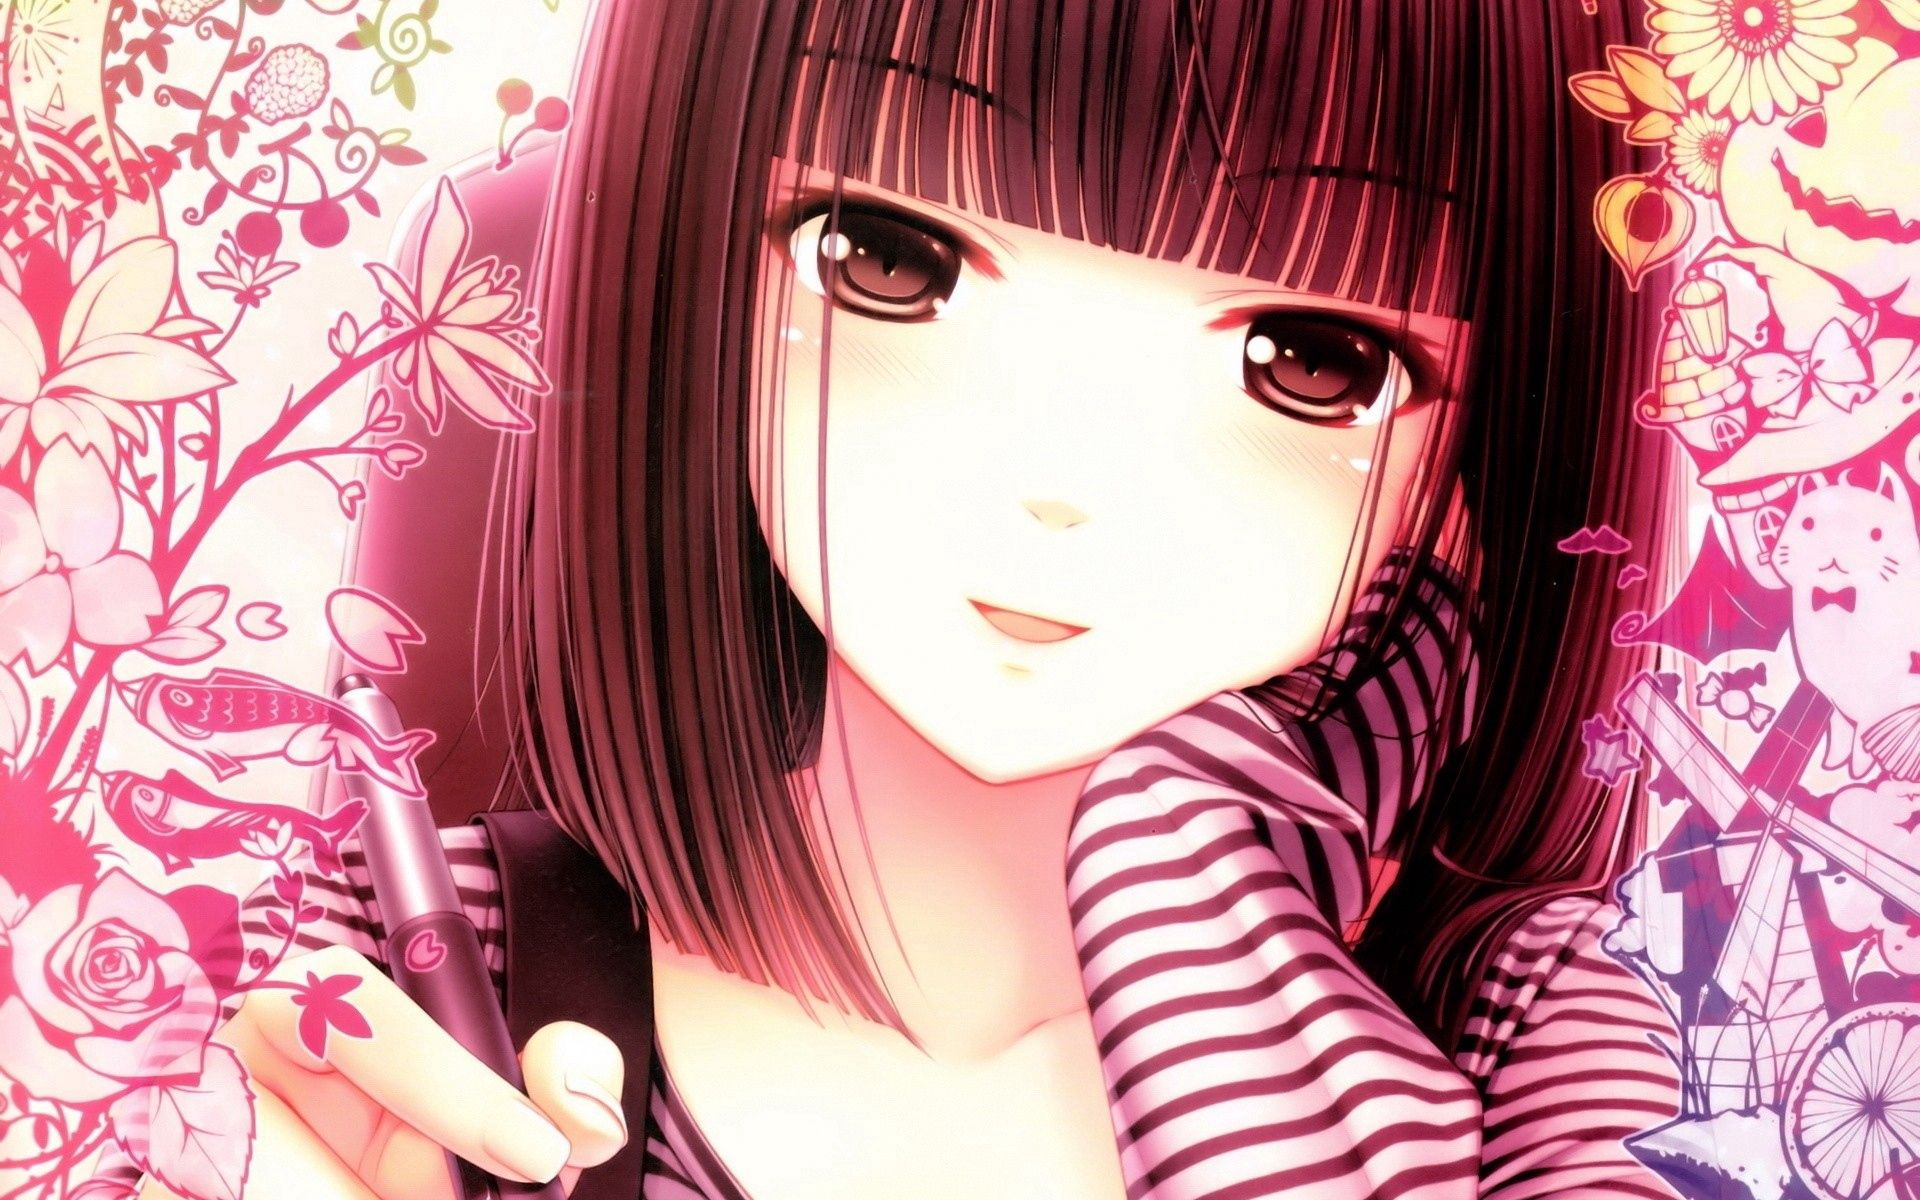 74958 download wallpaper Anime, Girl, Face, Pen screensavers and pictures for free